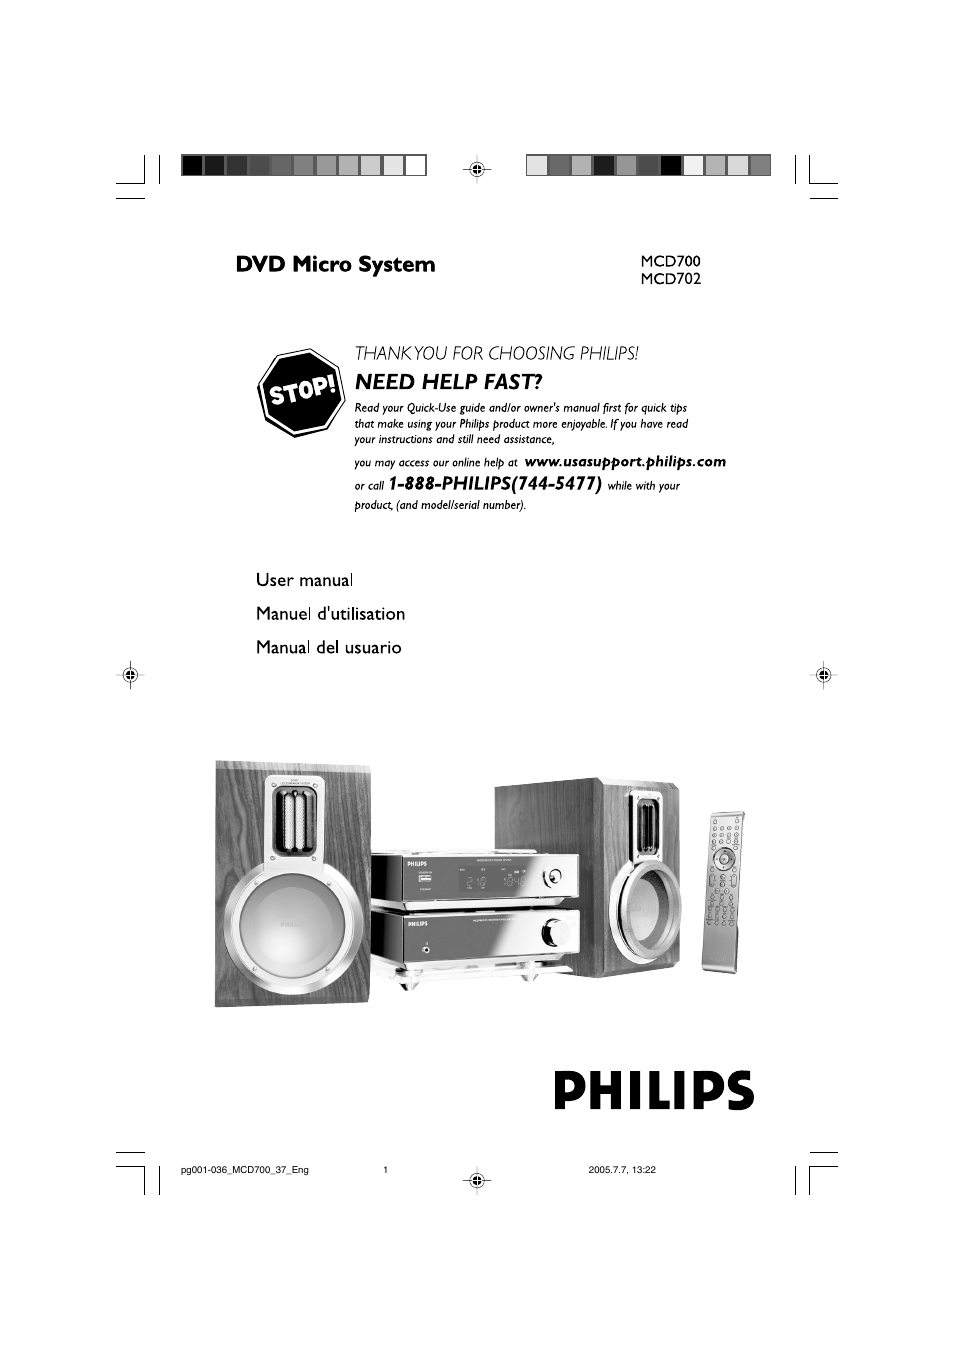 philips dvd micro theatre mcd702 user manual 36 pages rh manualsdir com Philips Instruction Manuals Philips Television